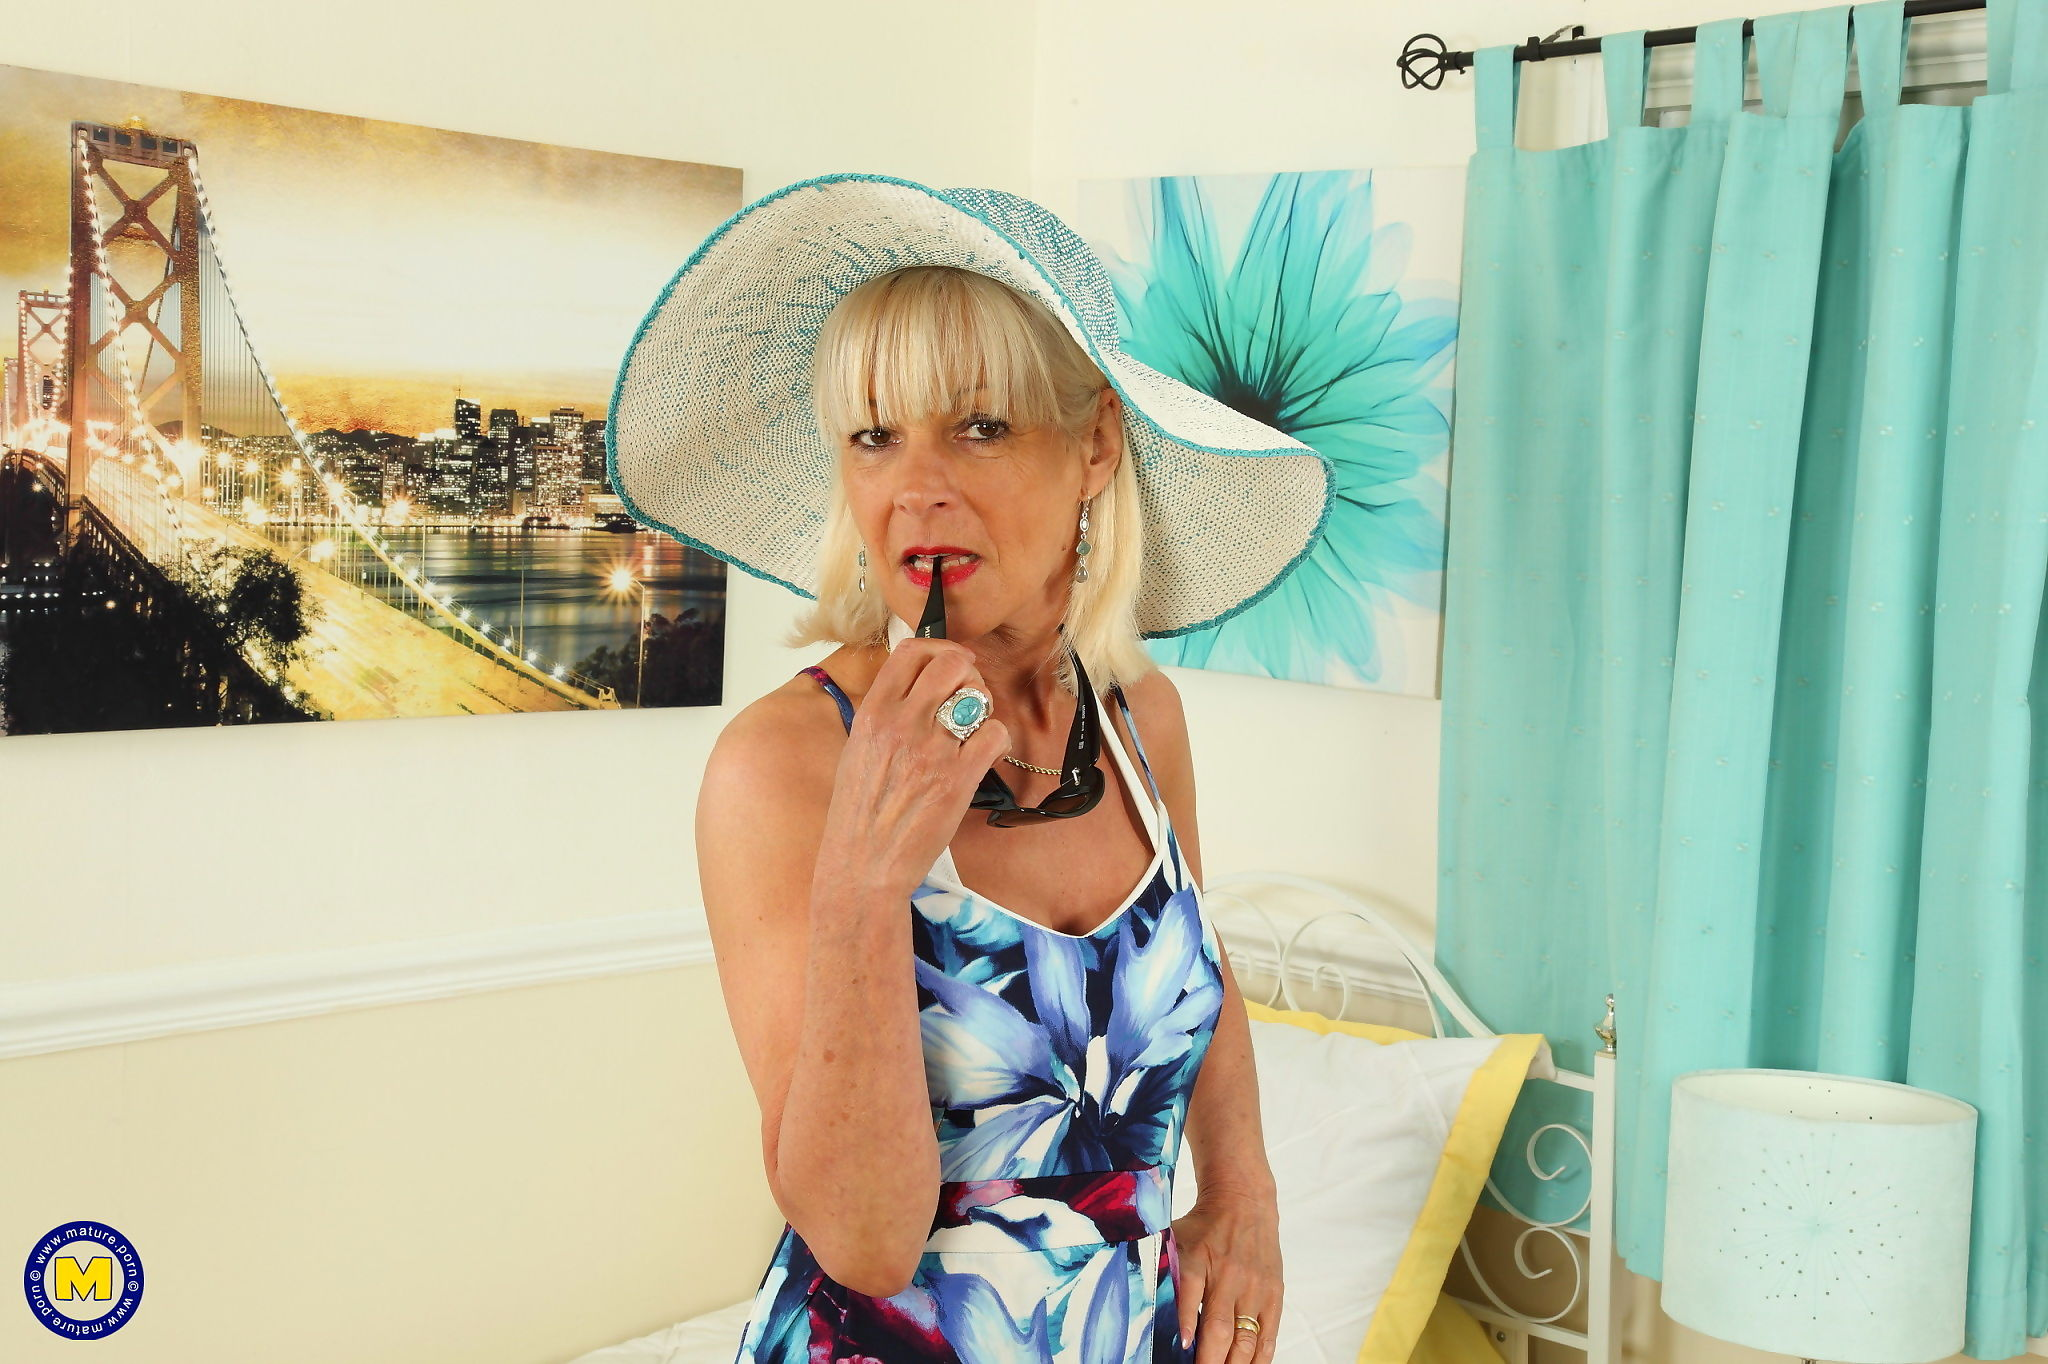 Horny british mature elaine loves to get wet by herself - part 1338